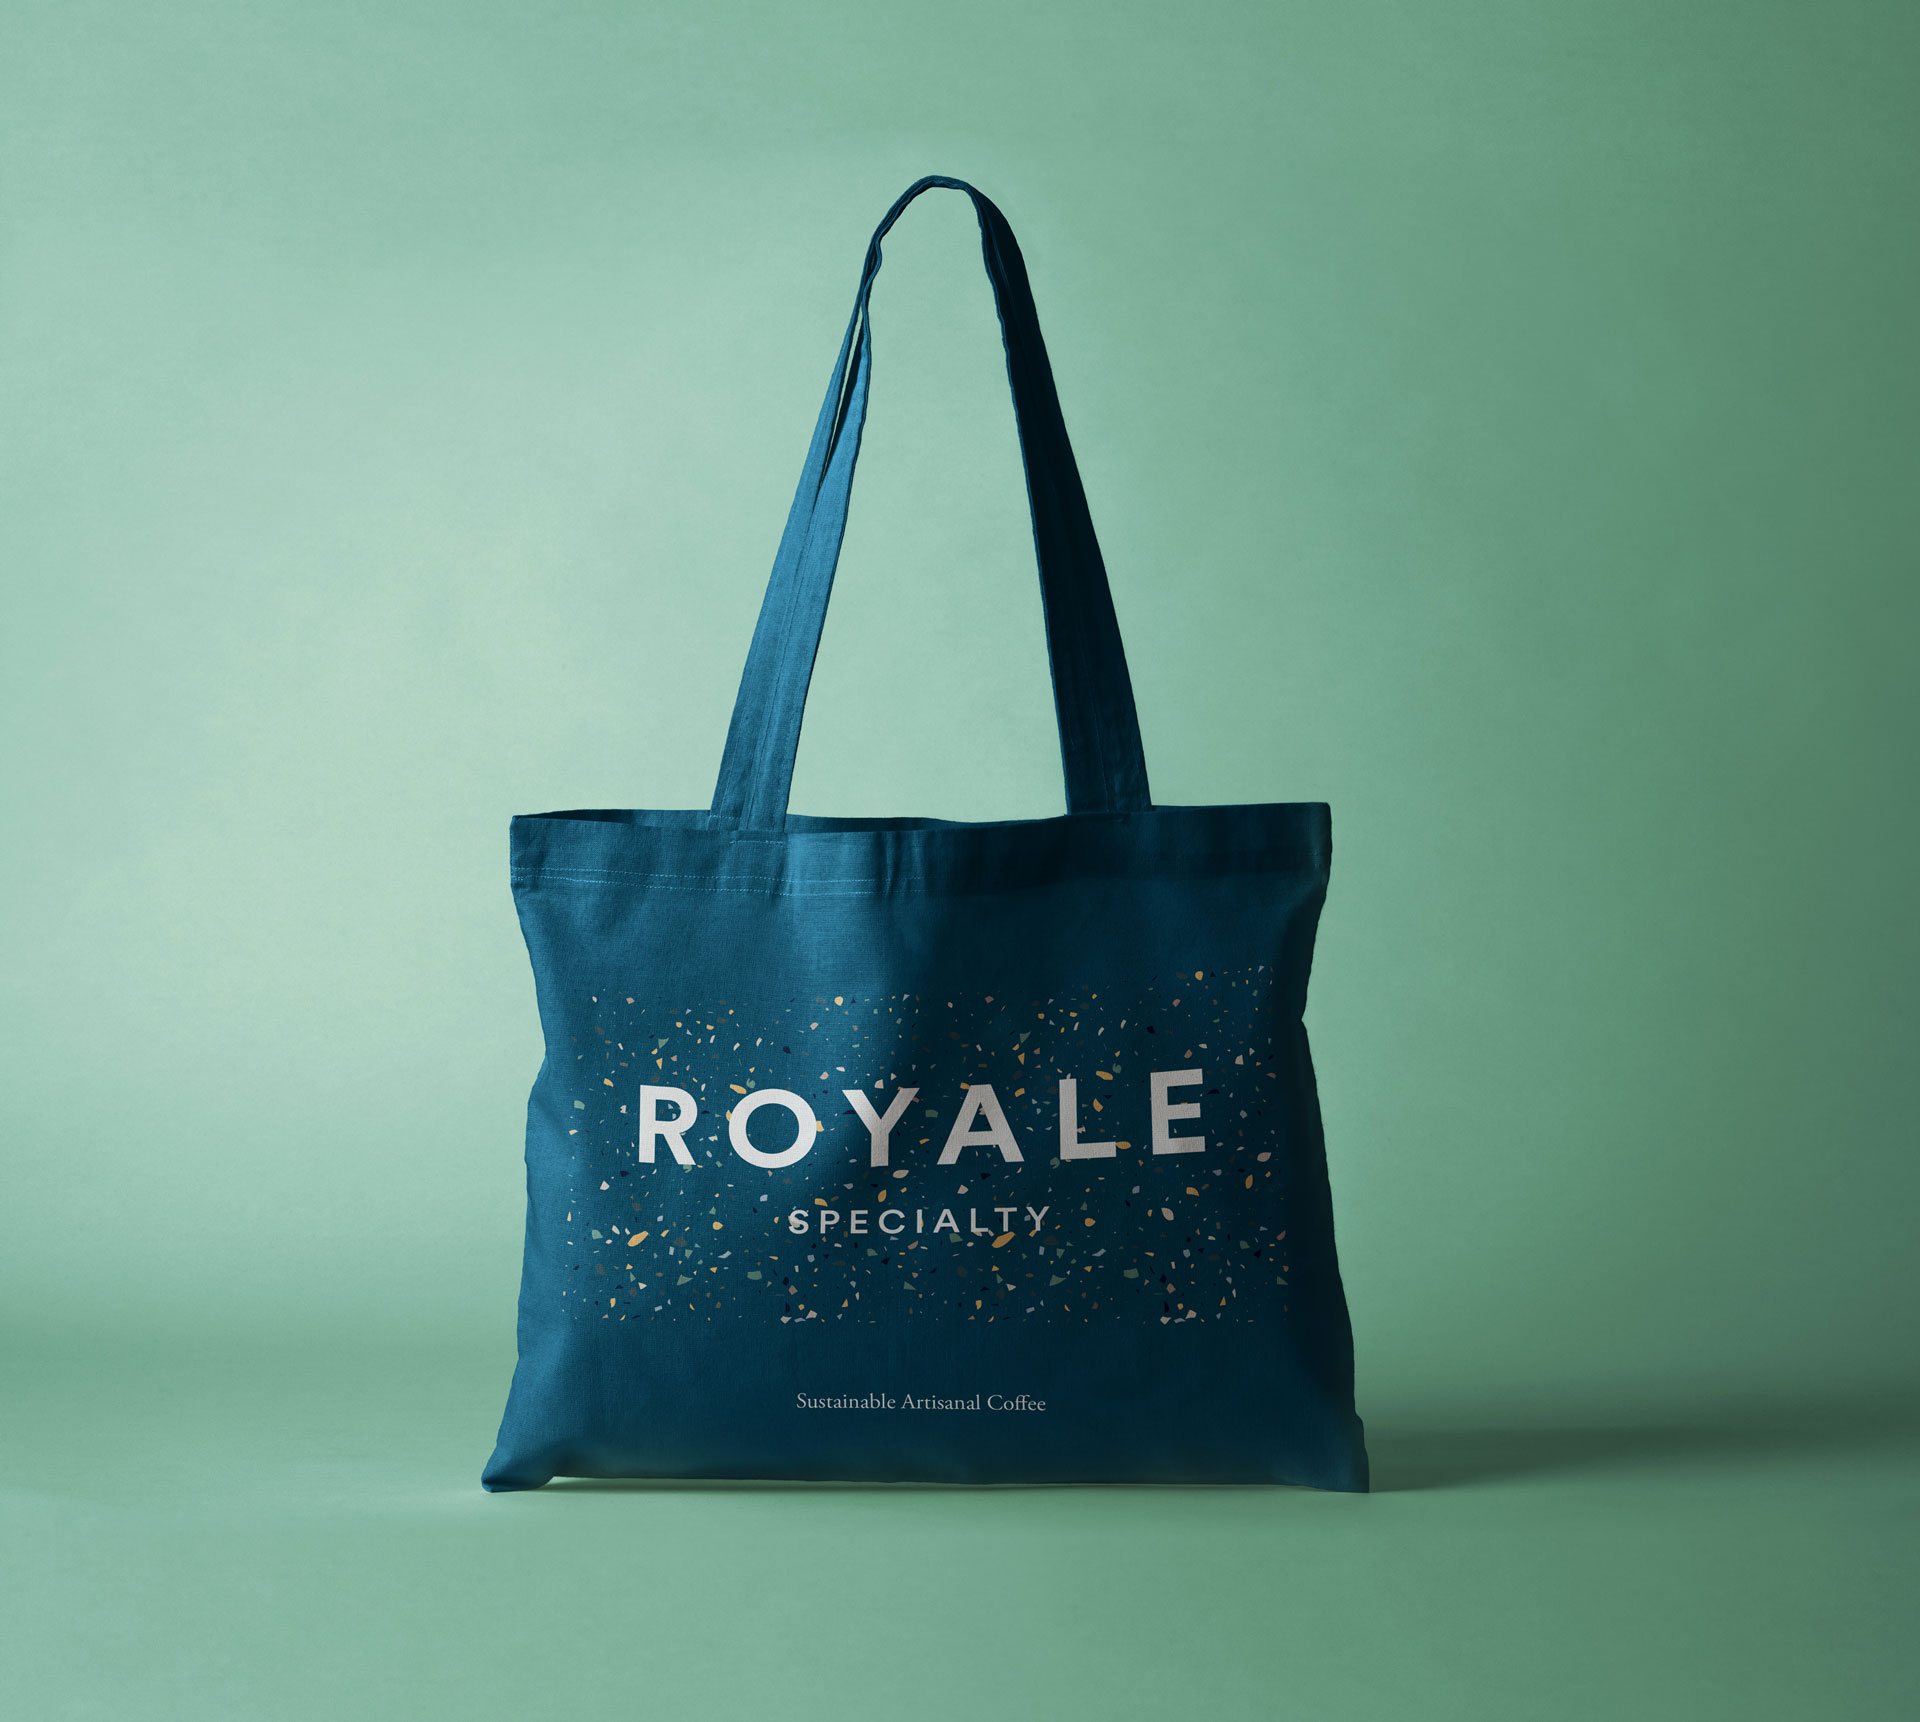 Royale Specialty Coffee  Naming | Brand Strategy | Brand Identity | Packaging Design | Shopify Design & Development